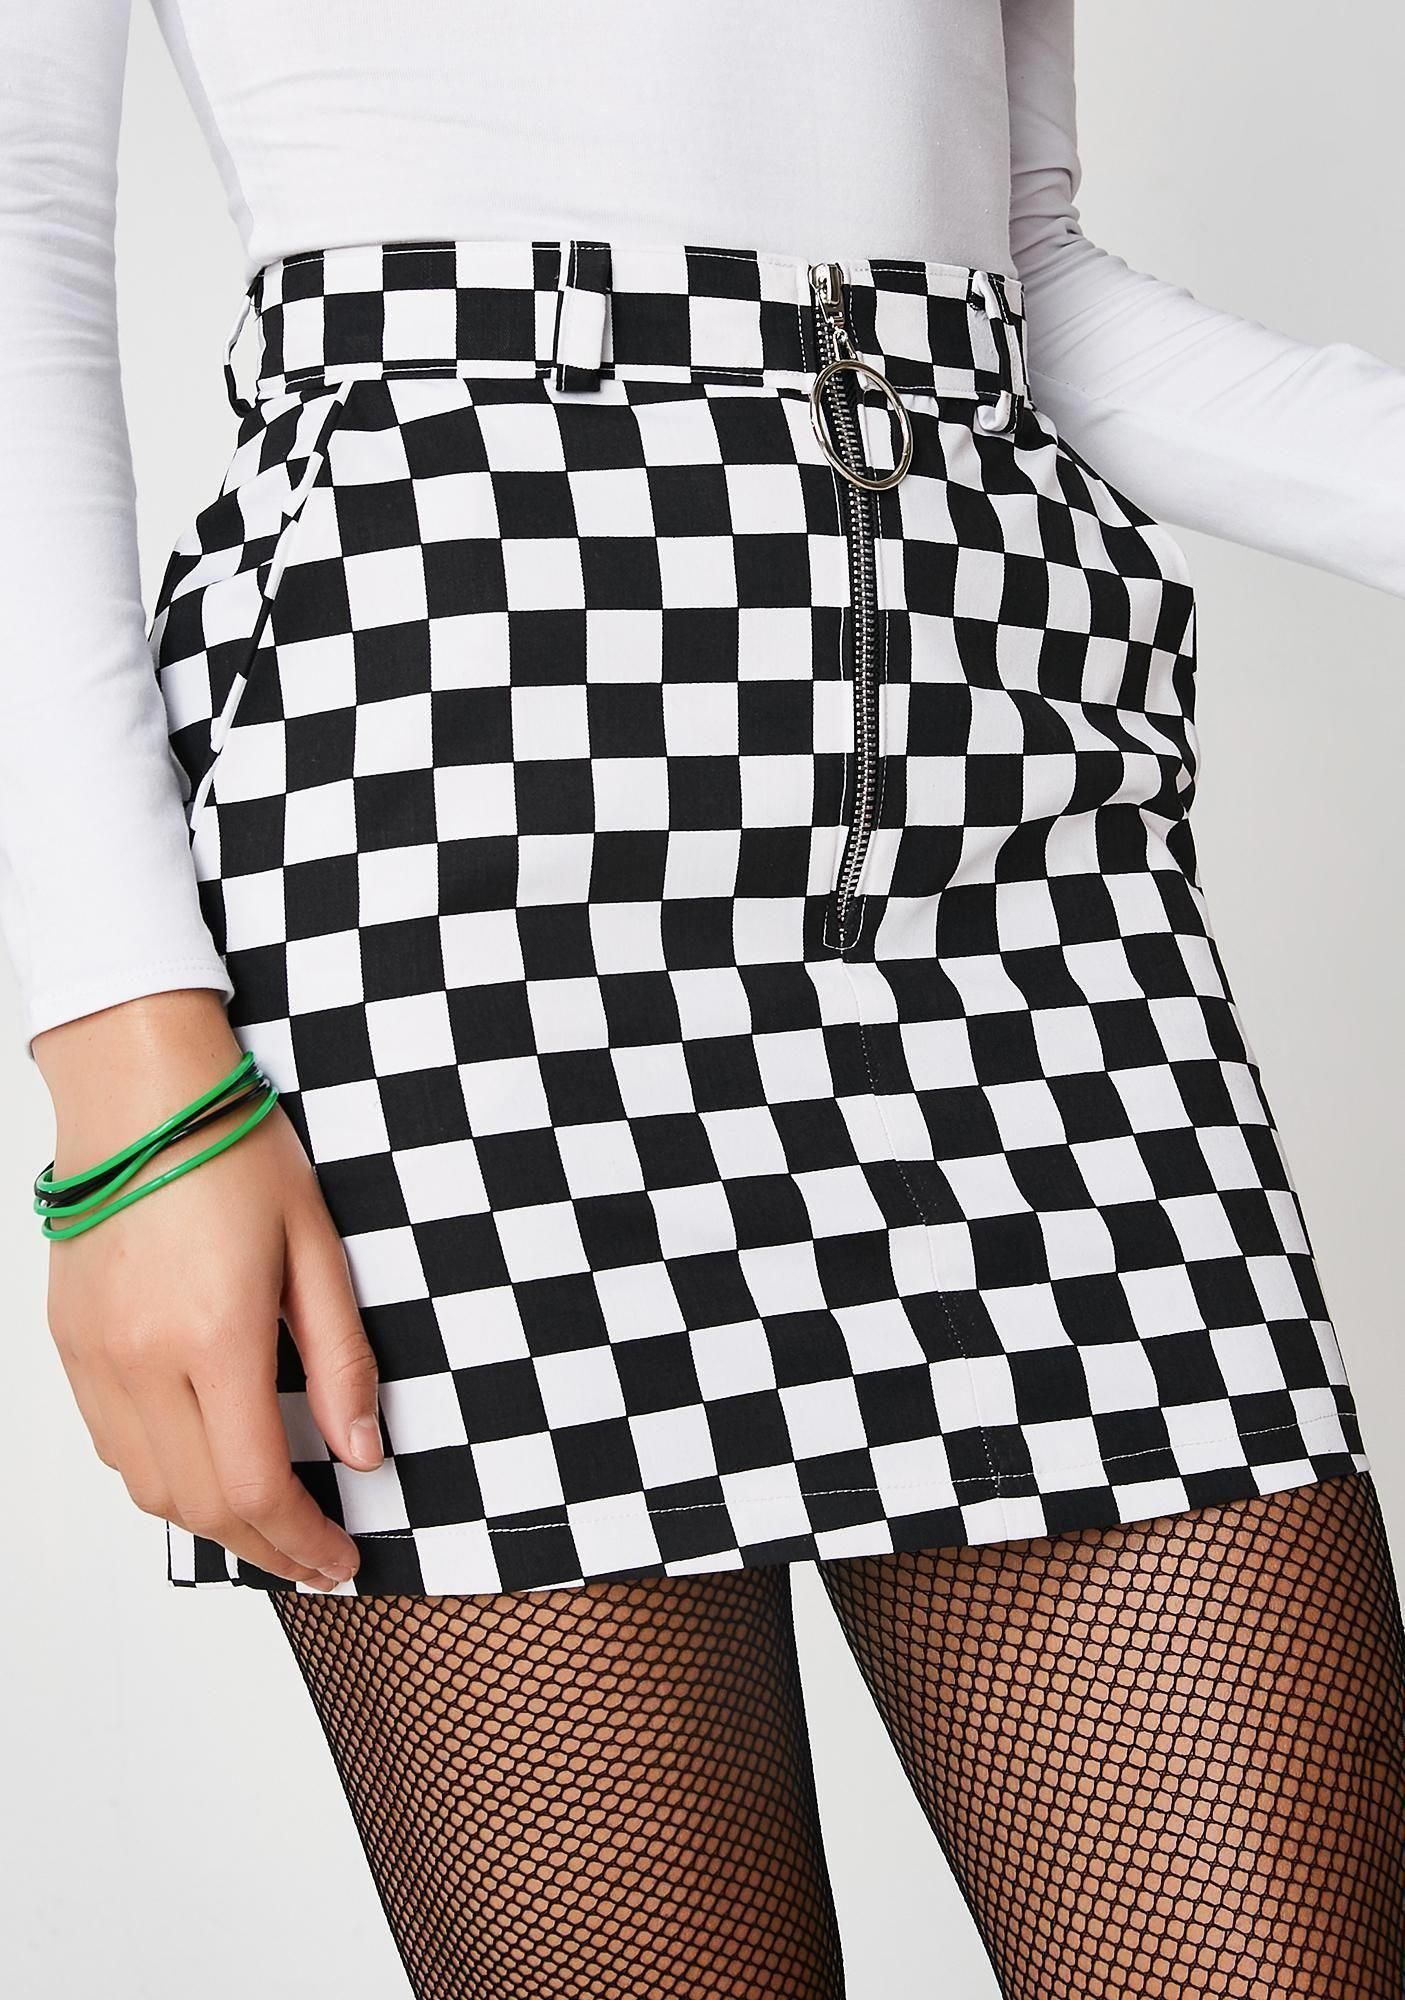 Checkered Skirt Black White Grid With Front Zipper Plaid High Waist Girls Skirts